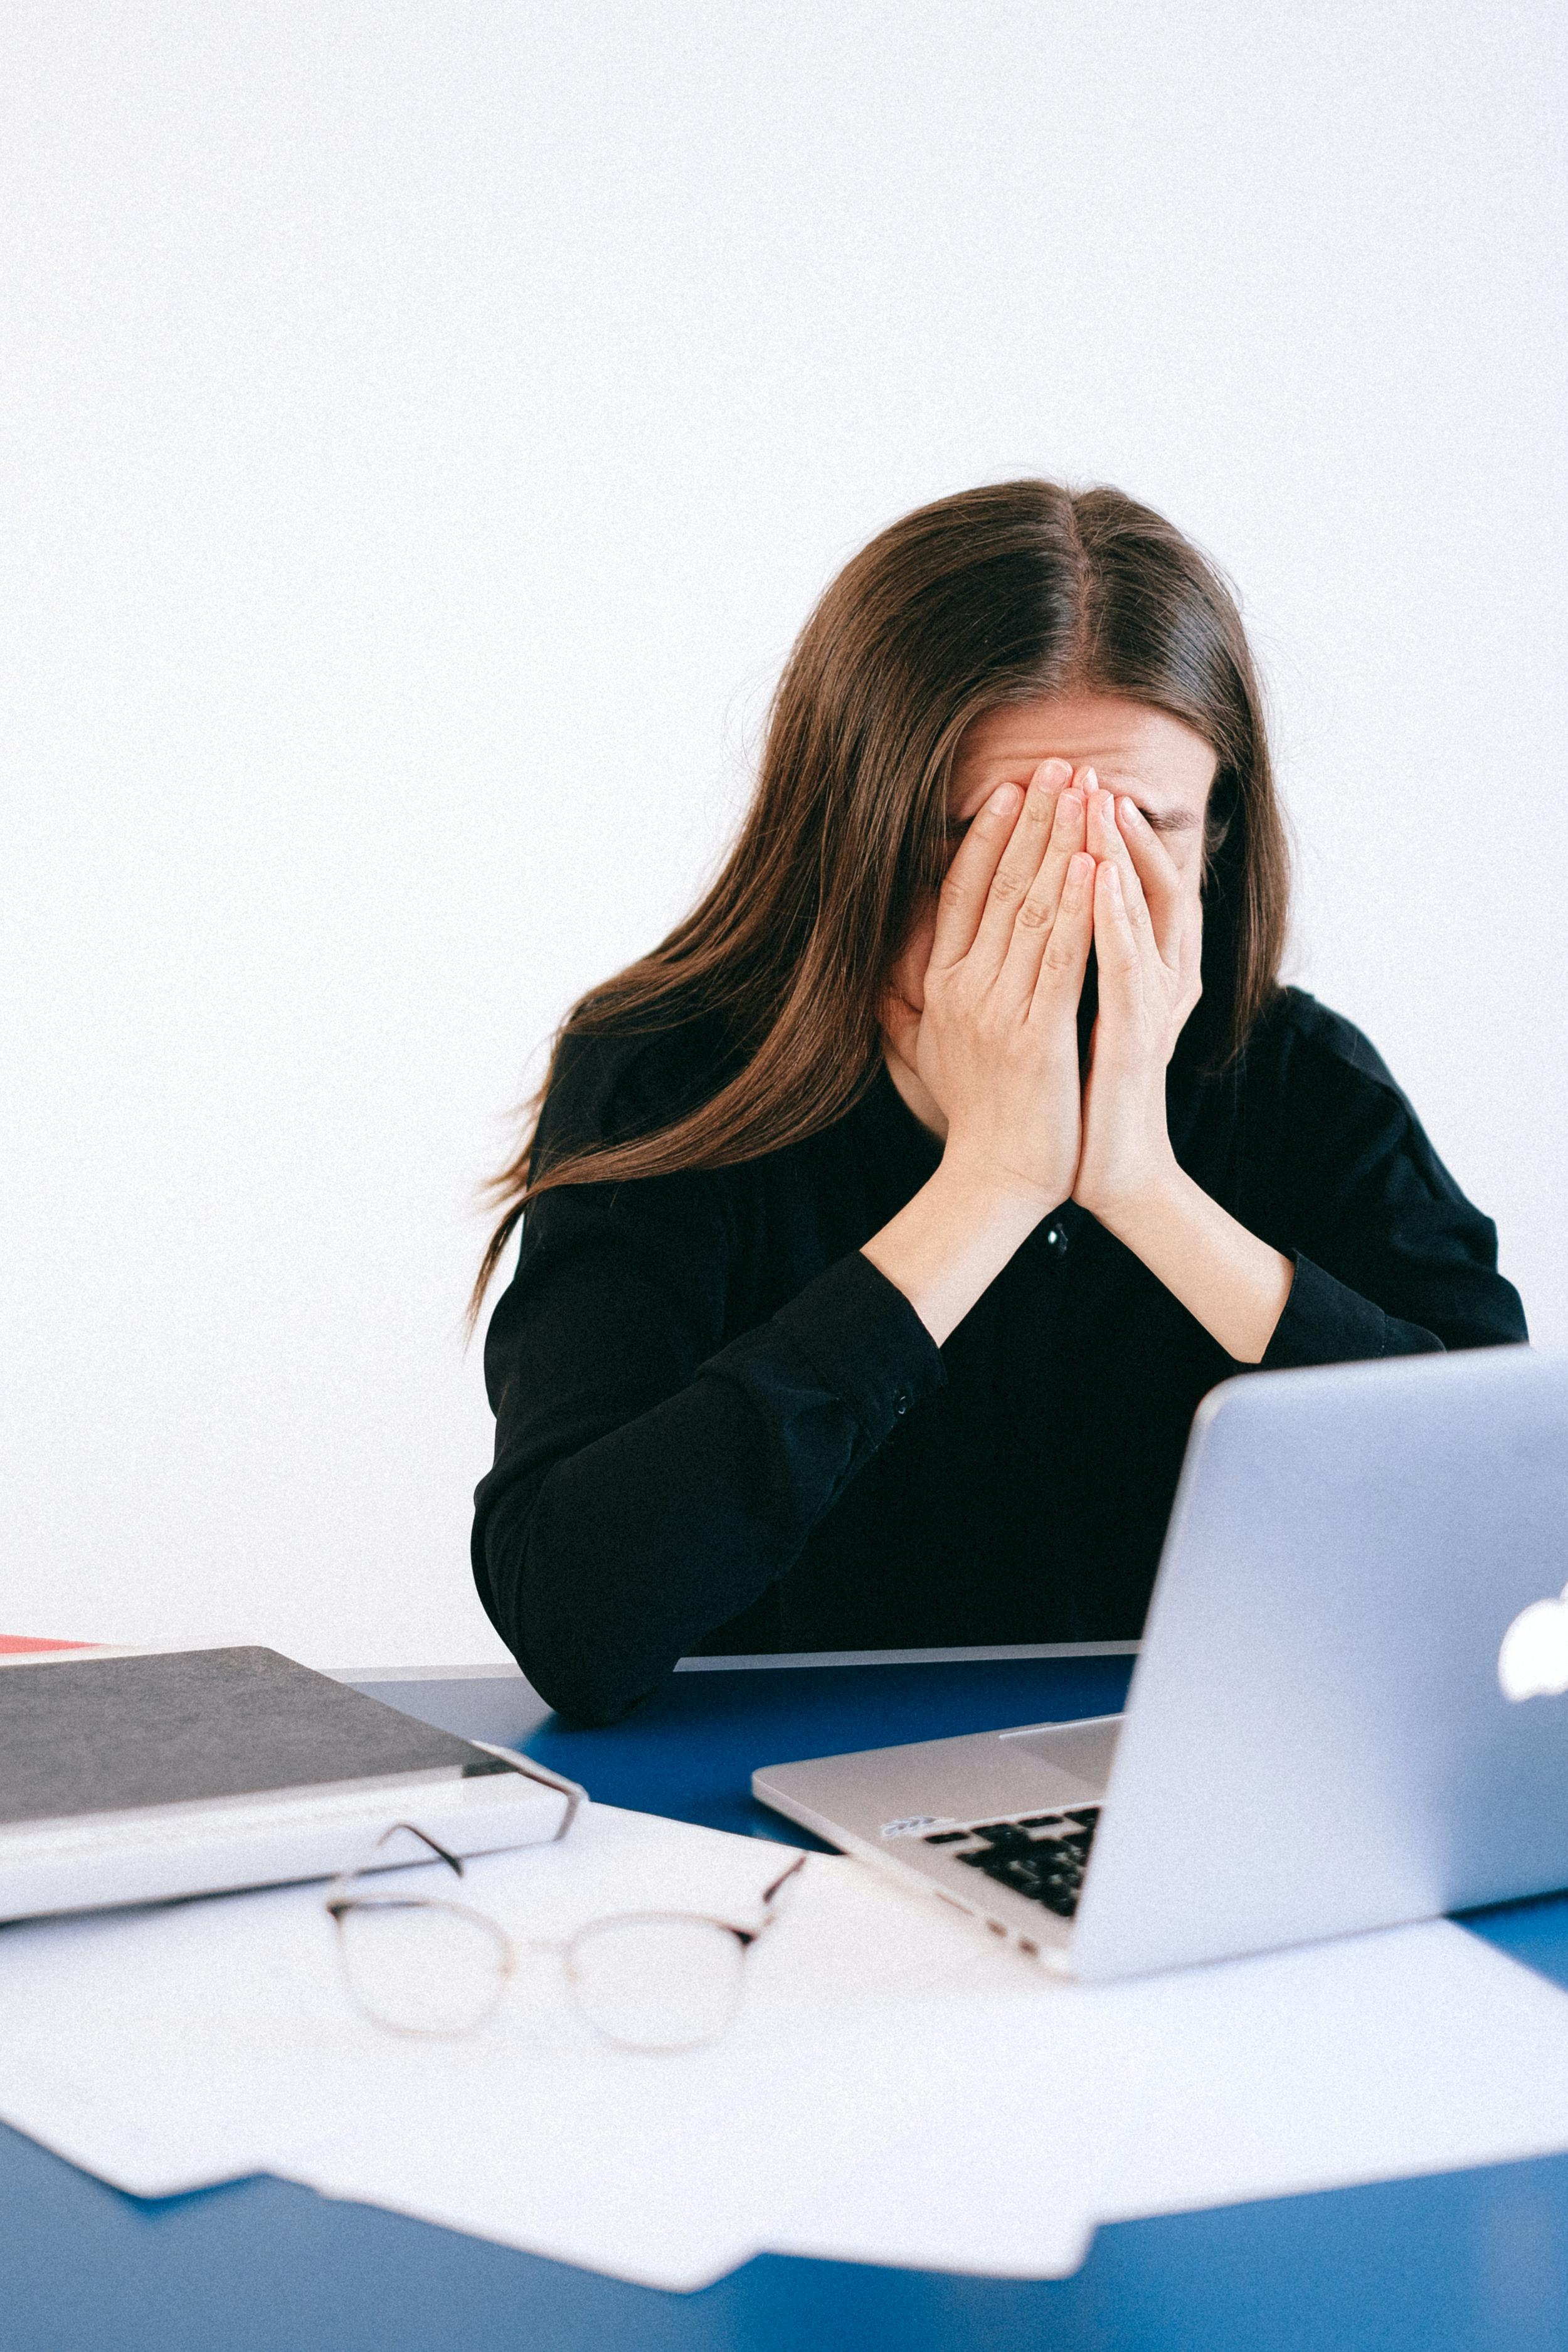 stressed-woman-covering-her-face-with-her-hands-4226221.jpg